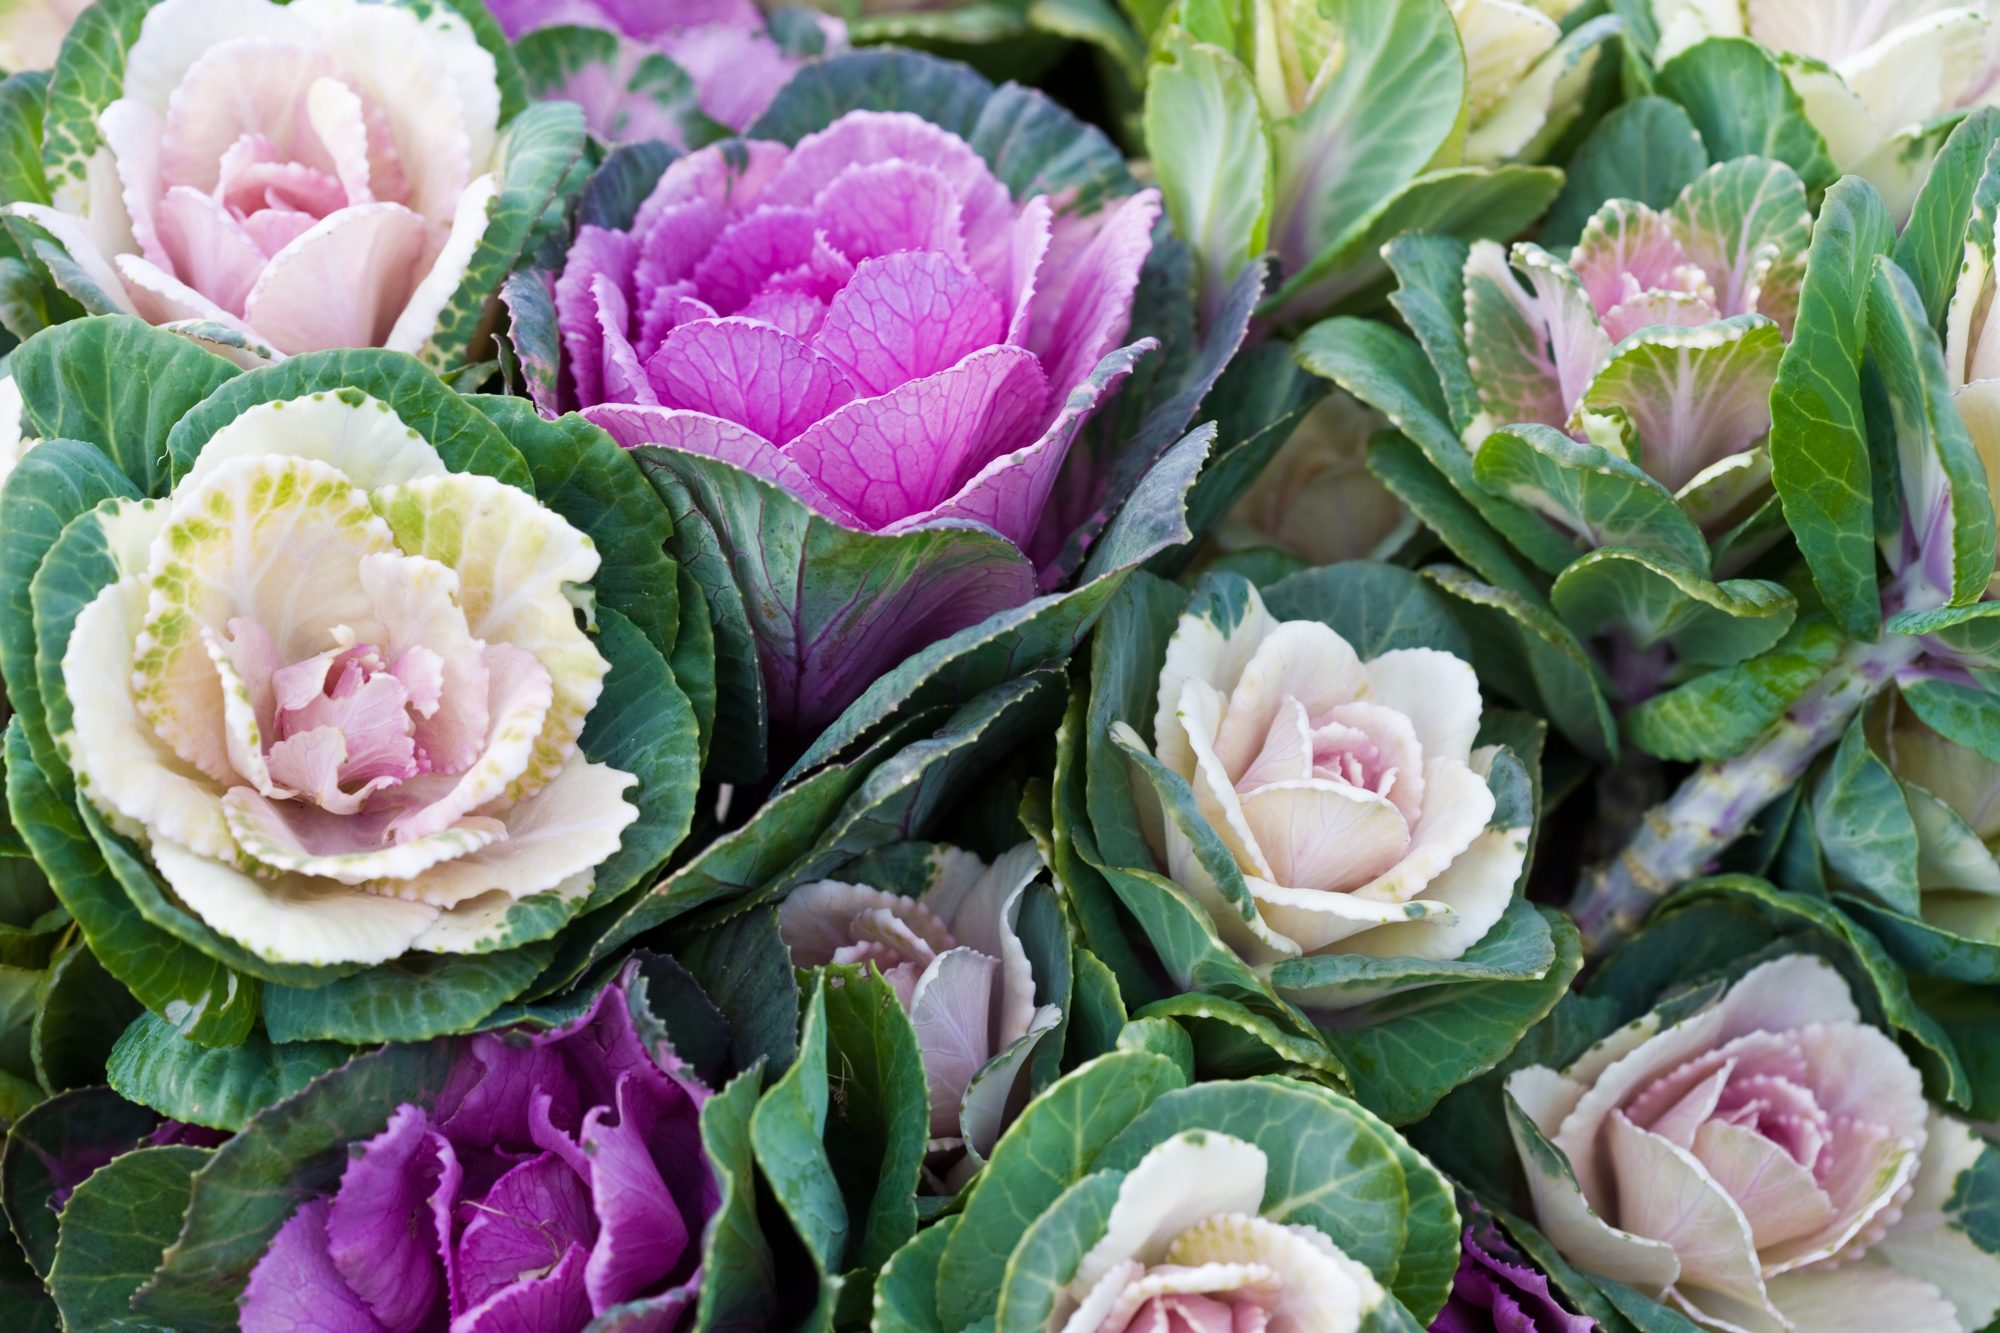 Ornamental Cabbage and Kale